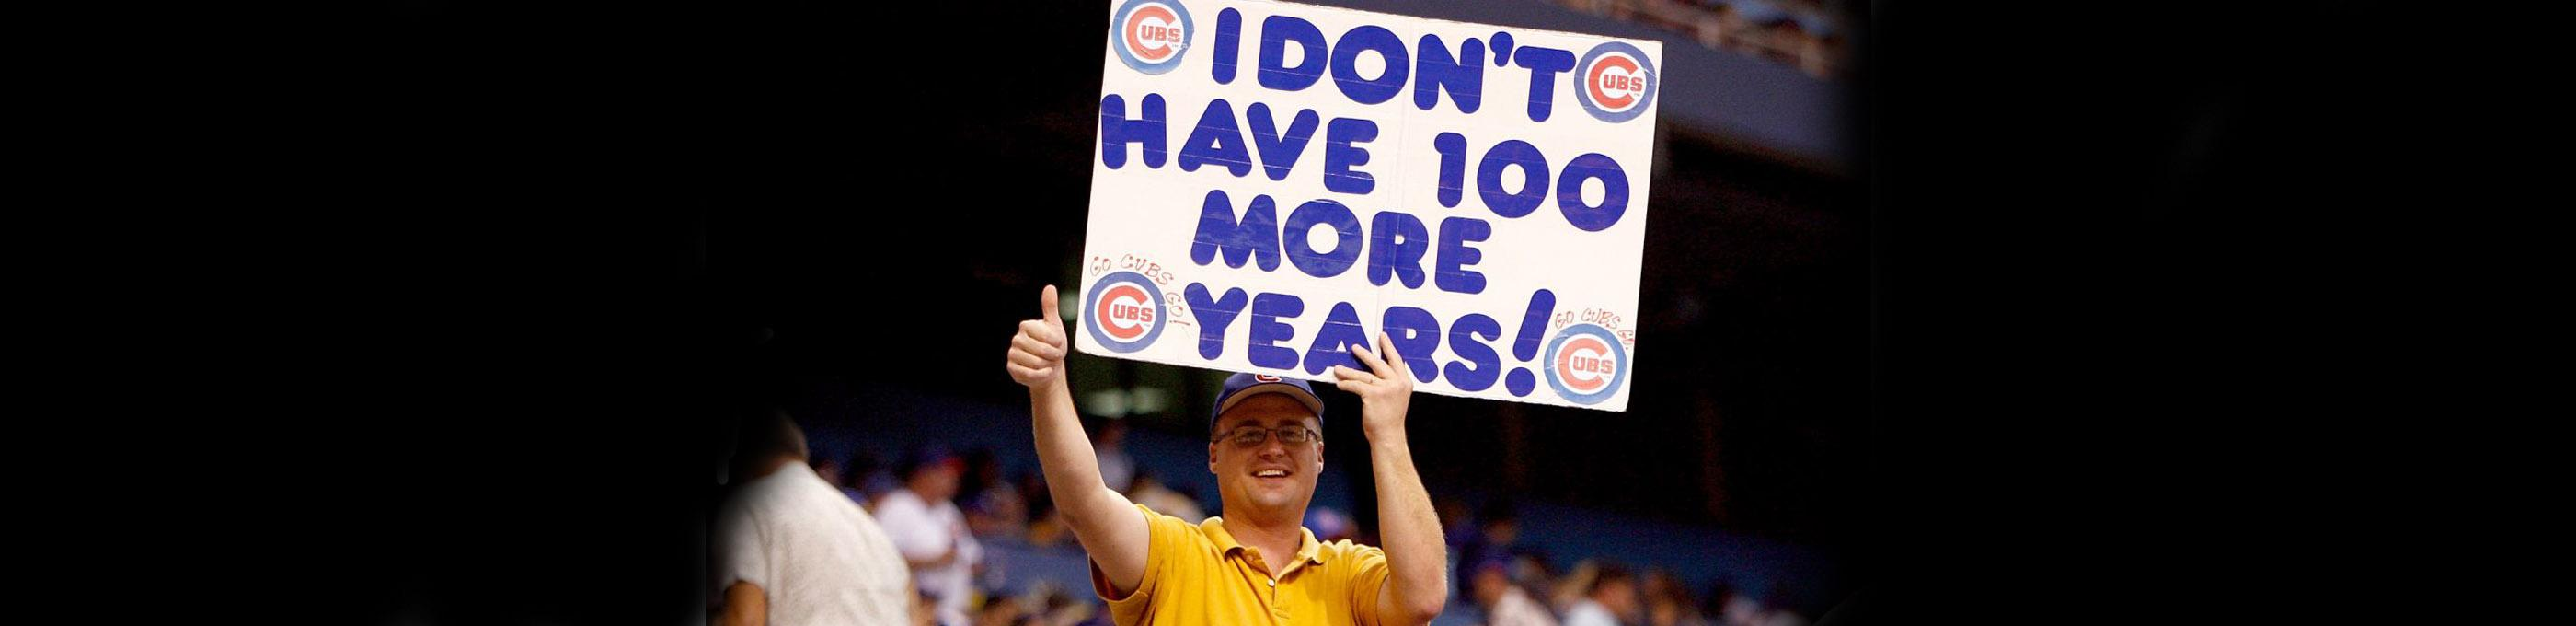 Chicago Cubs can't escape the 'curse'